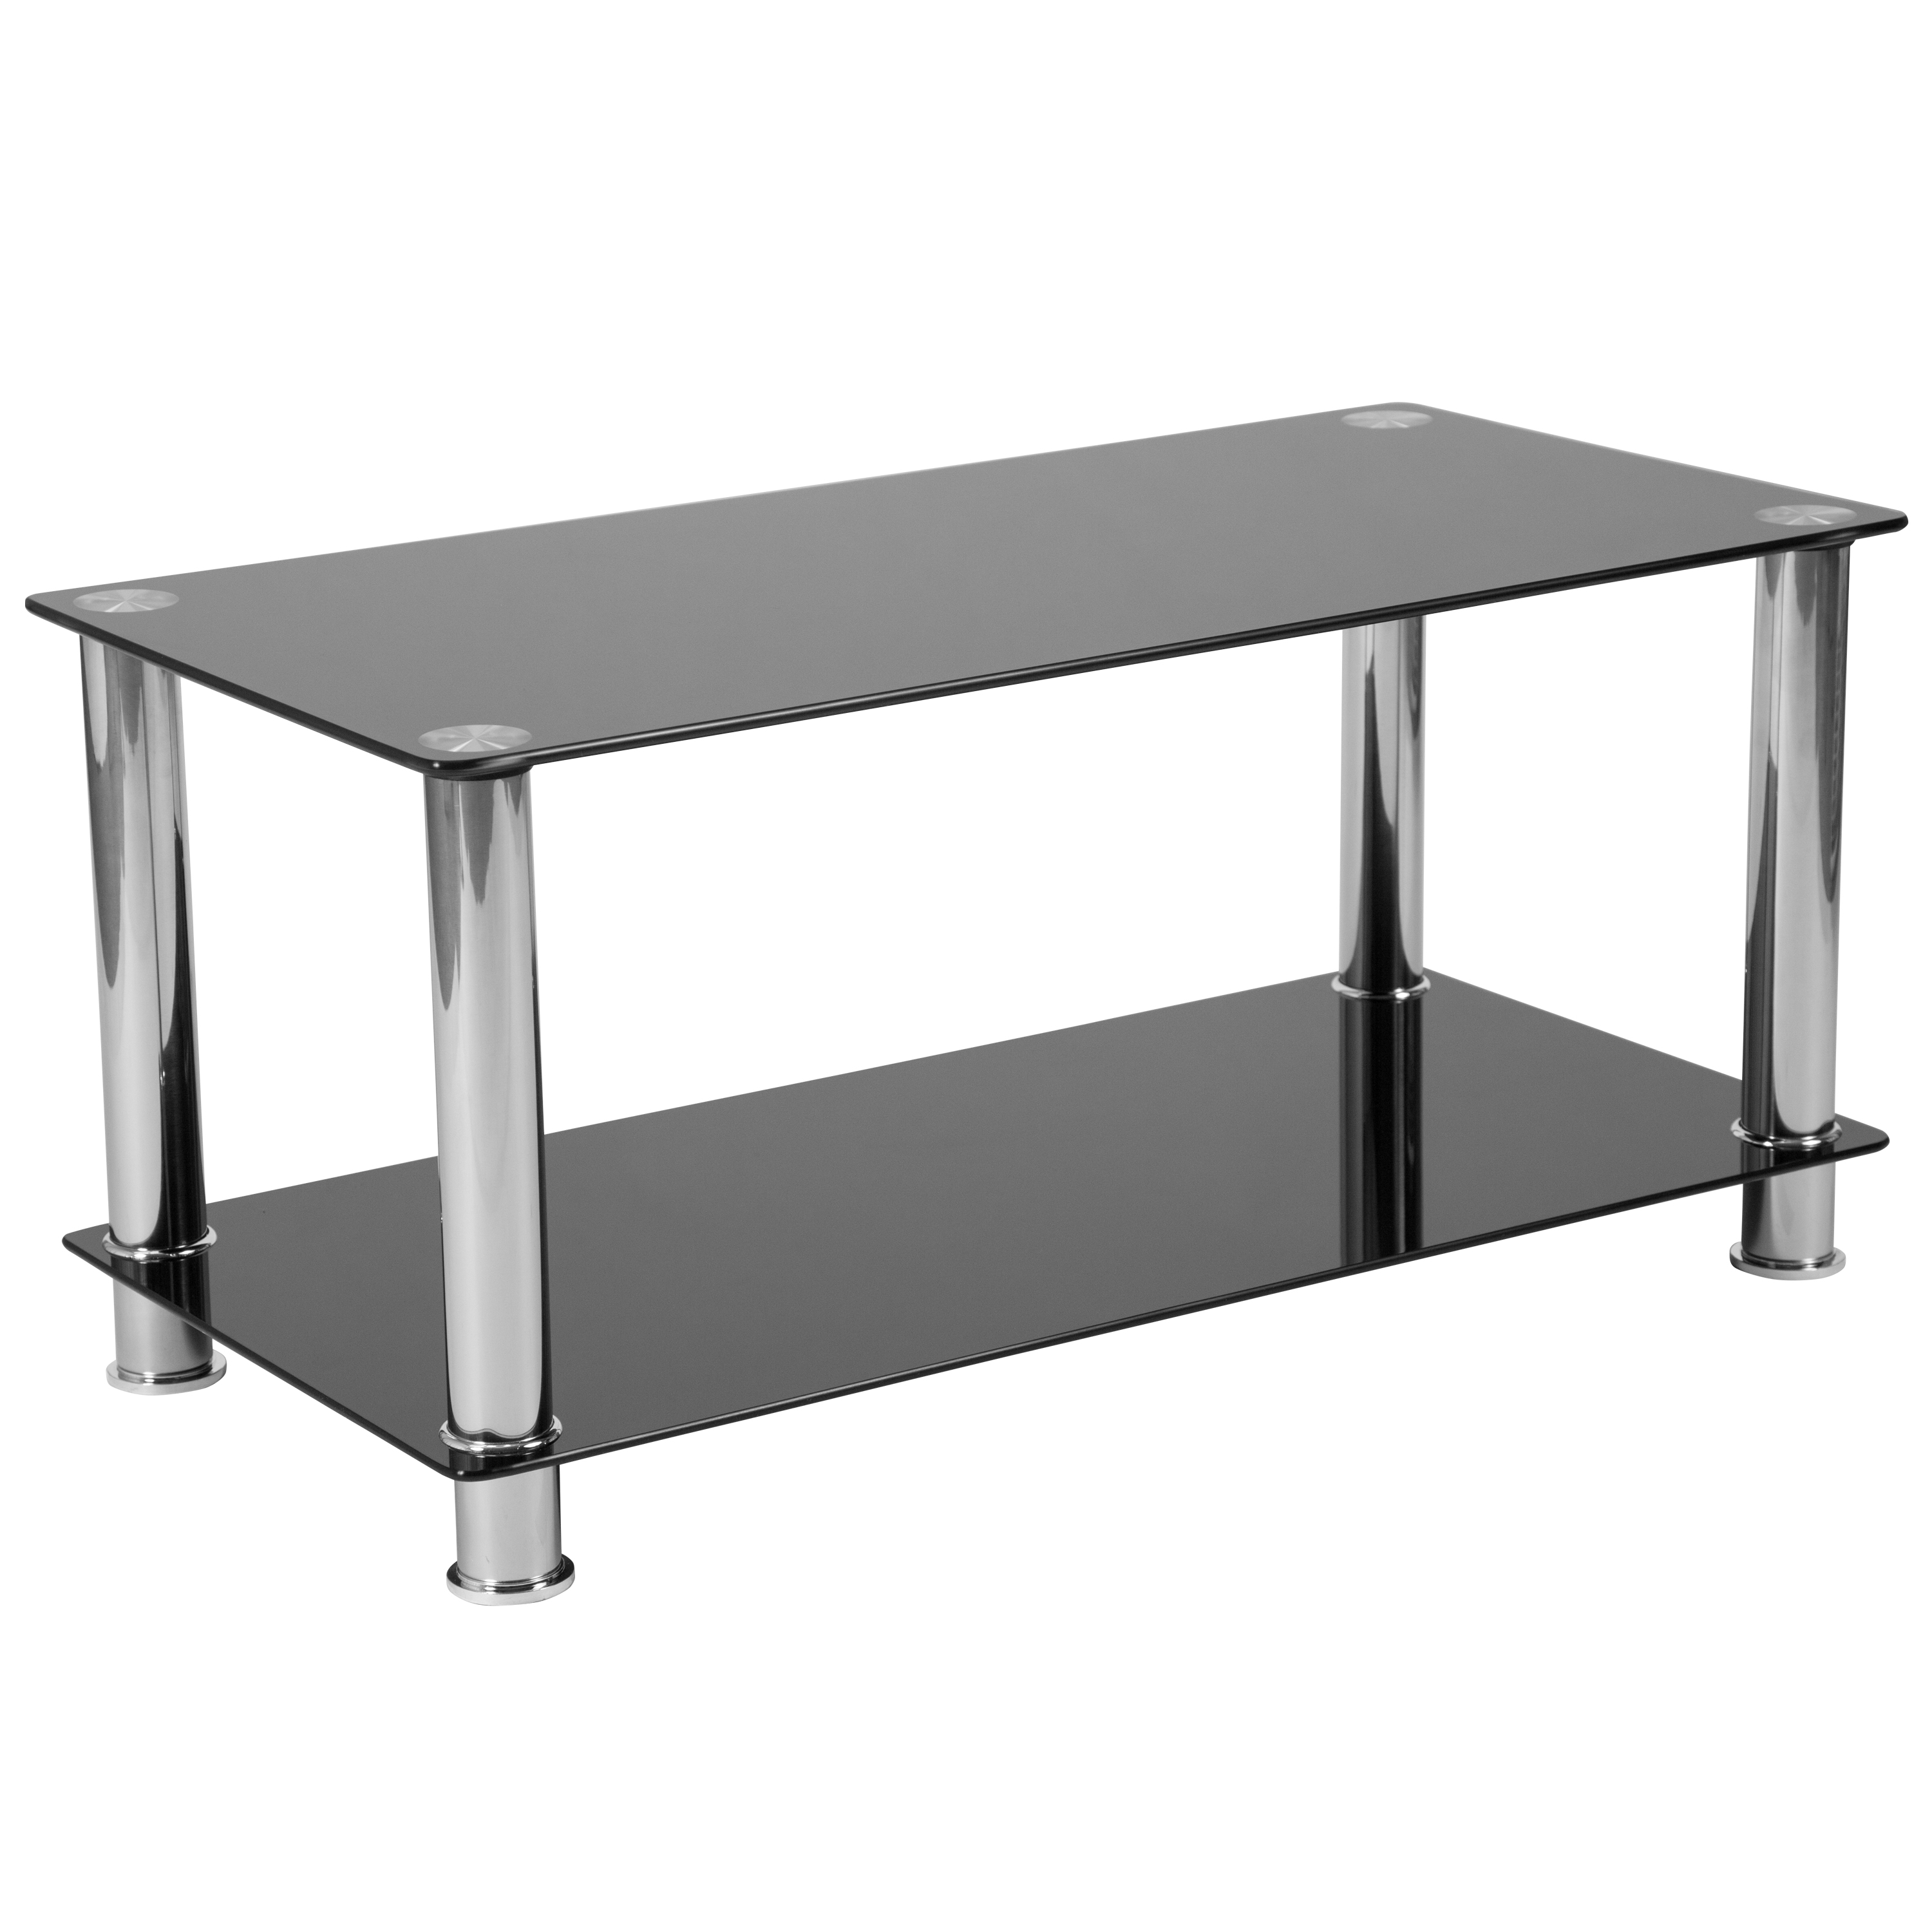 Flash Furniture Riverside Collection Black Glass Coffee Table with Shelves and Stainless Steel Frame